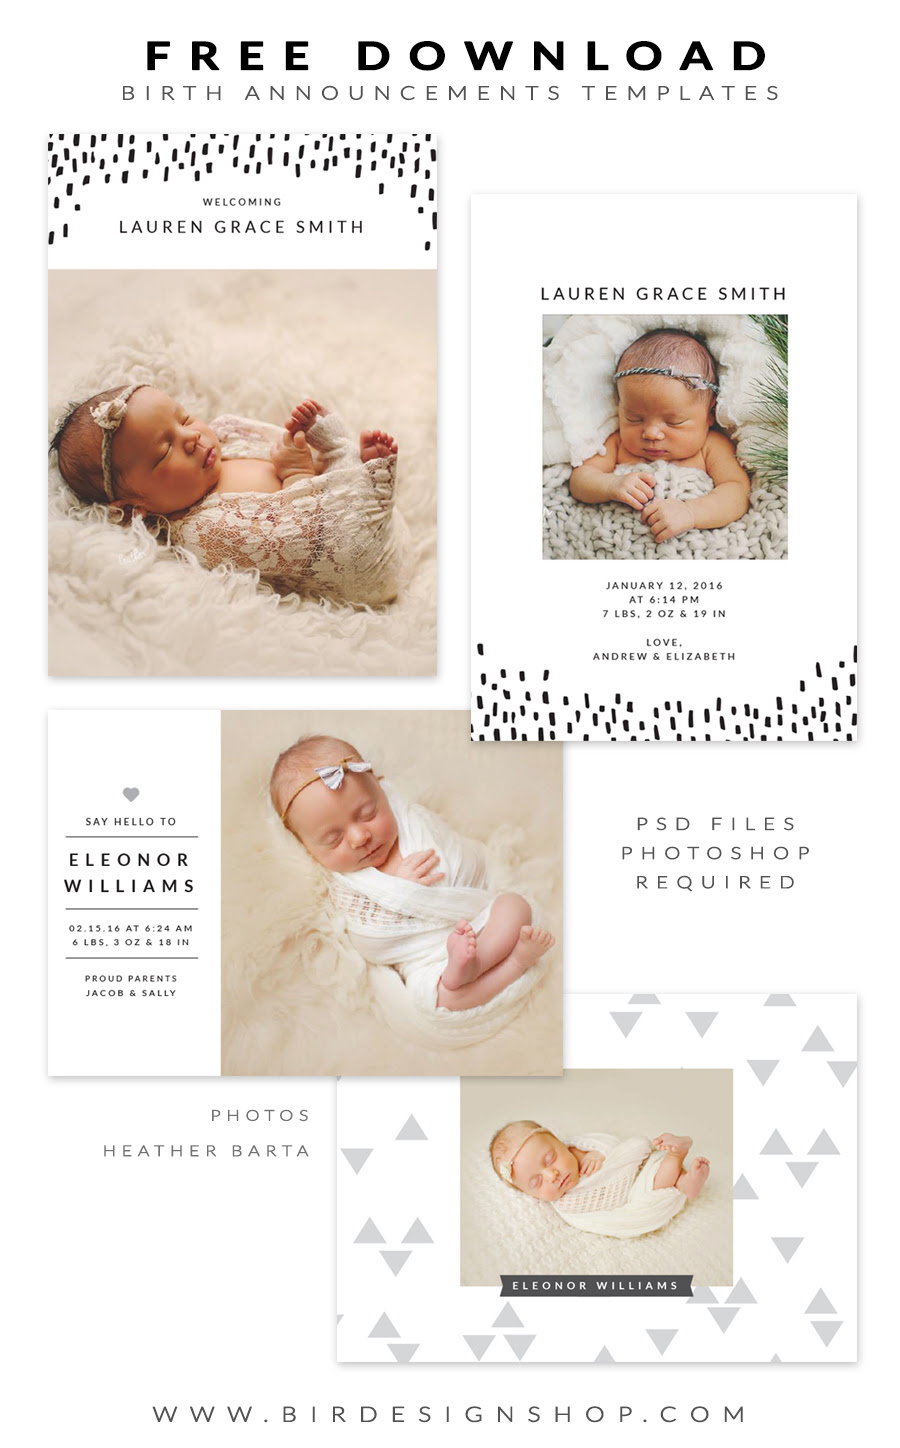 free birth announcements templates for photoshop birddesign photo treasury free resources